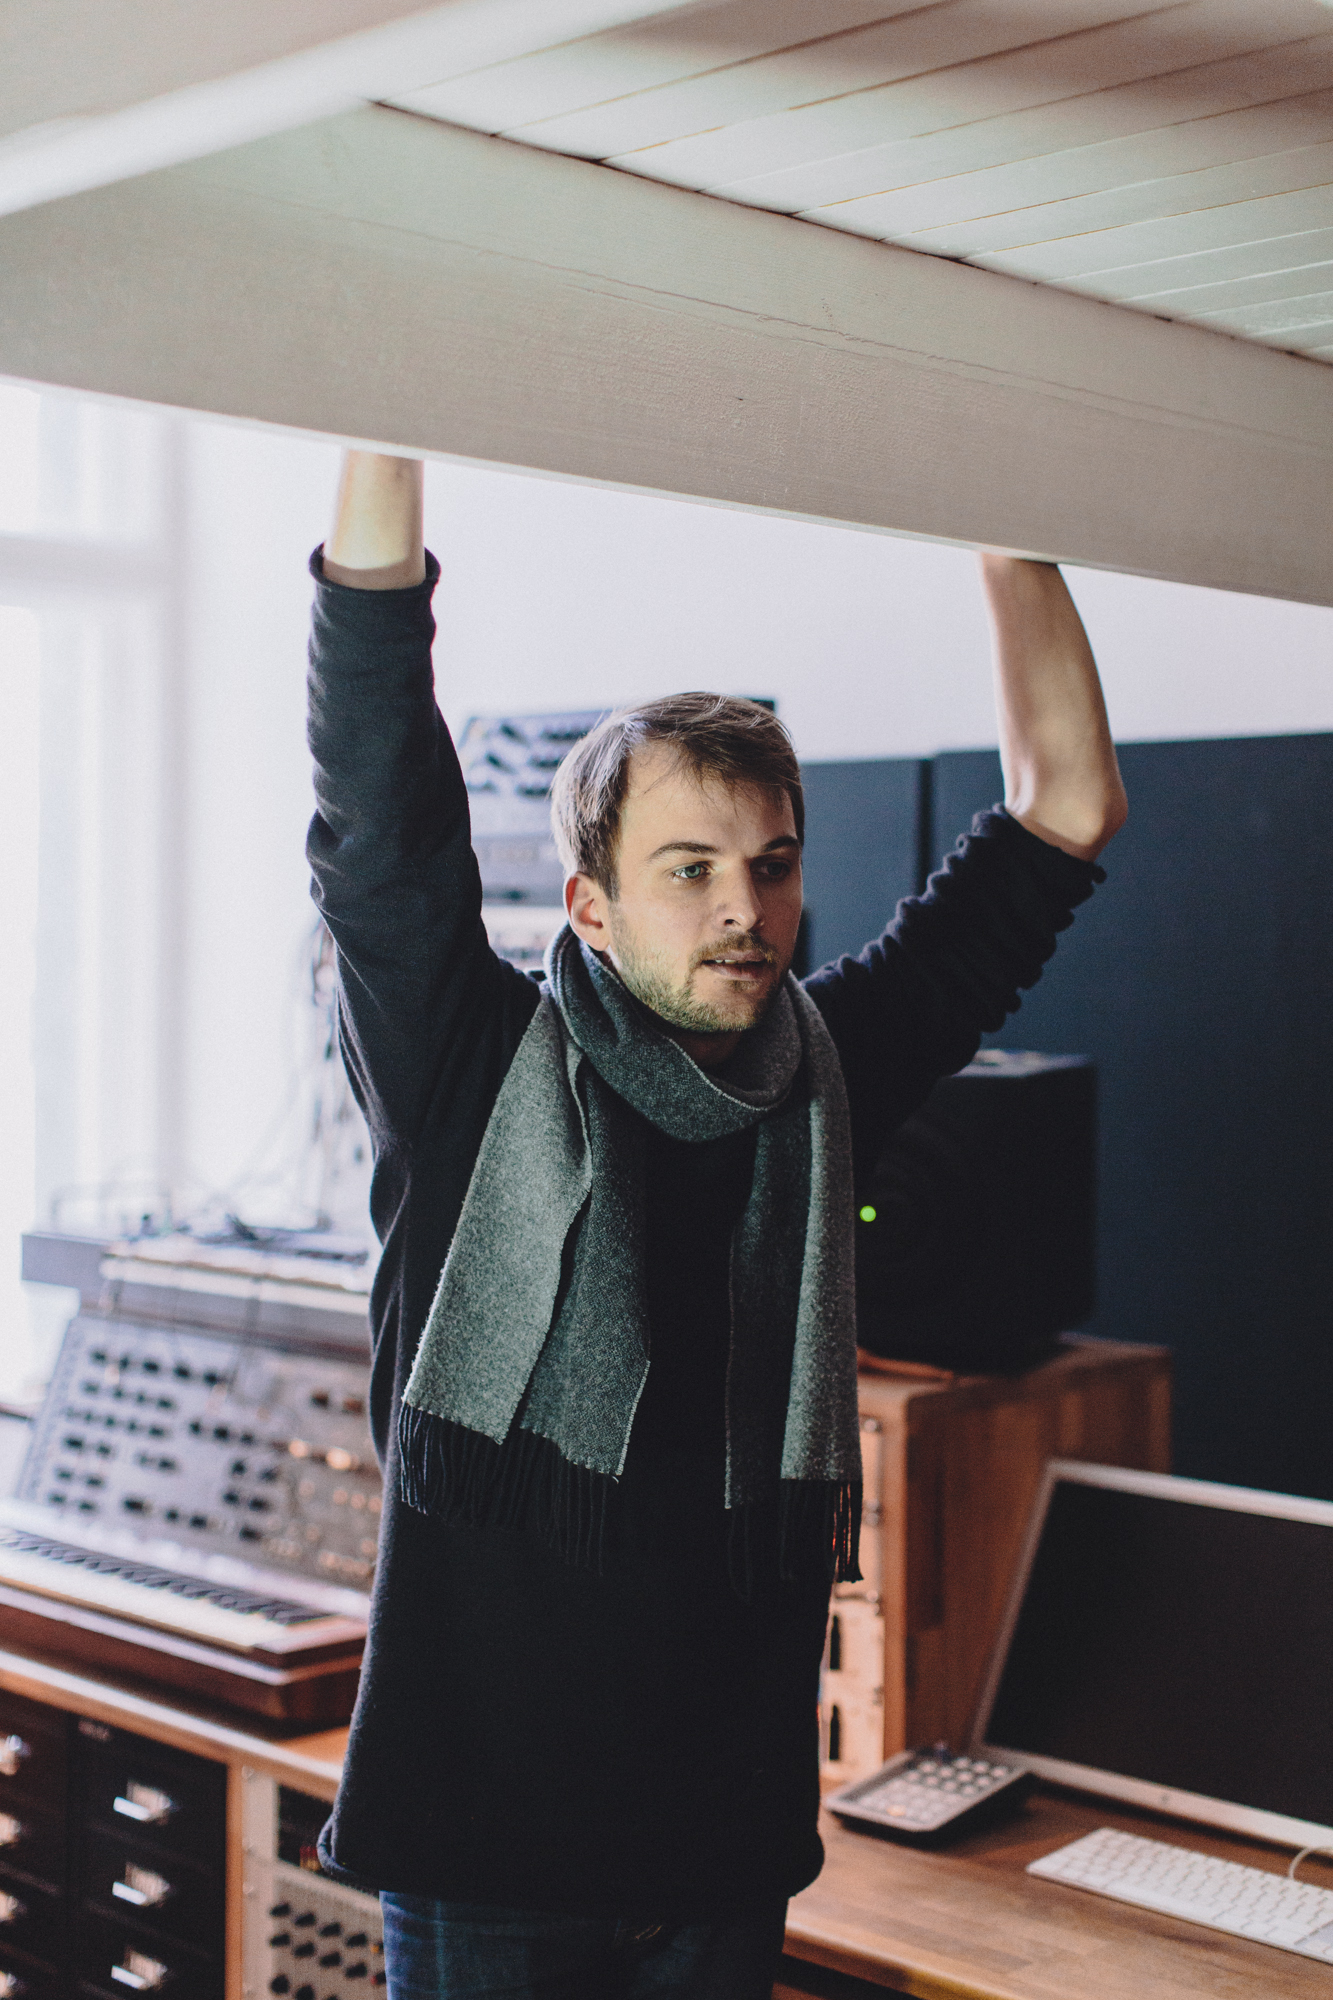 Composer Nils Frahm in his production studio in Berlin.